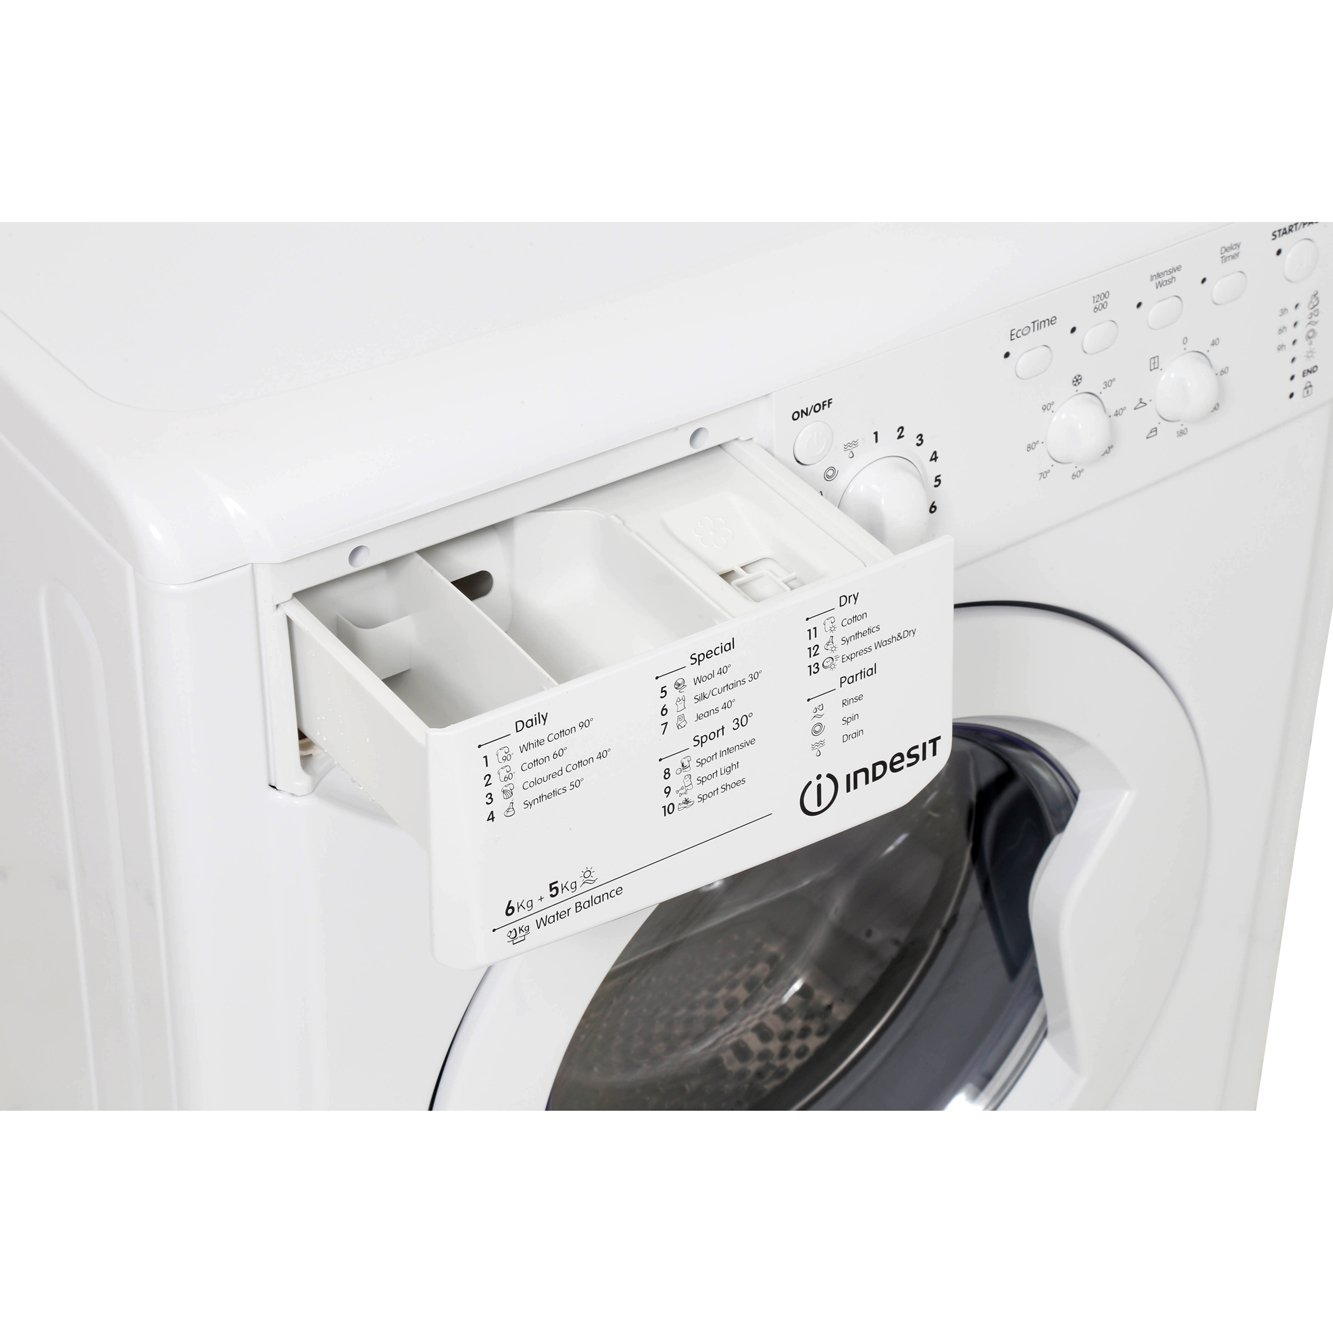 buy indesit start iwdc6125 washer dryer iwdc6125 white marks electrical. Black Bedroom Furniture Sets. Home Design Ideas